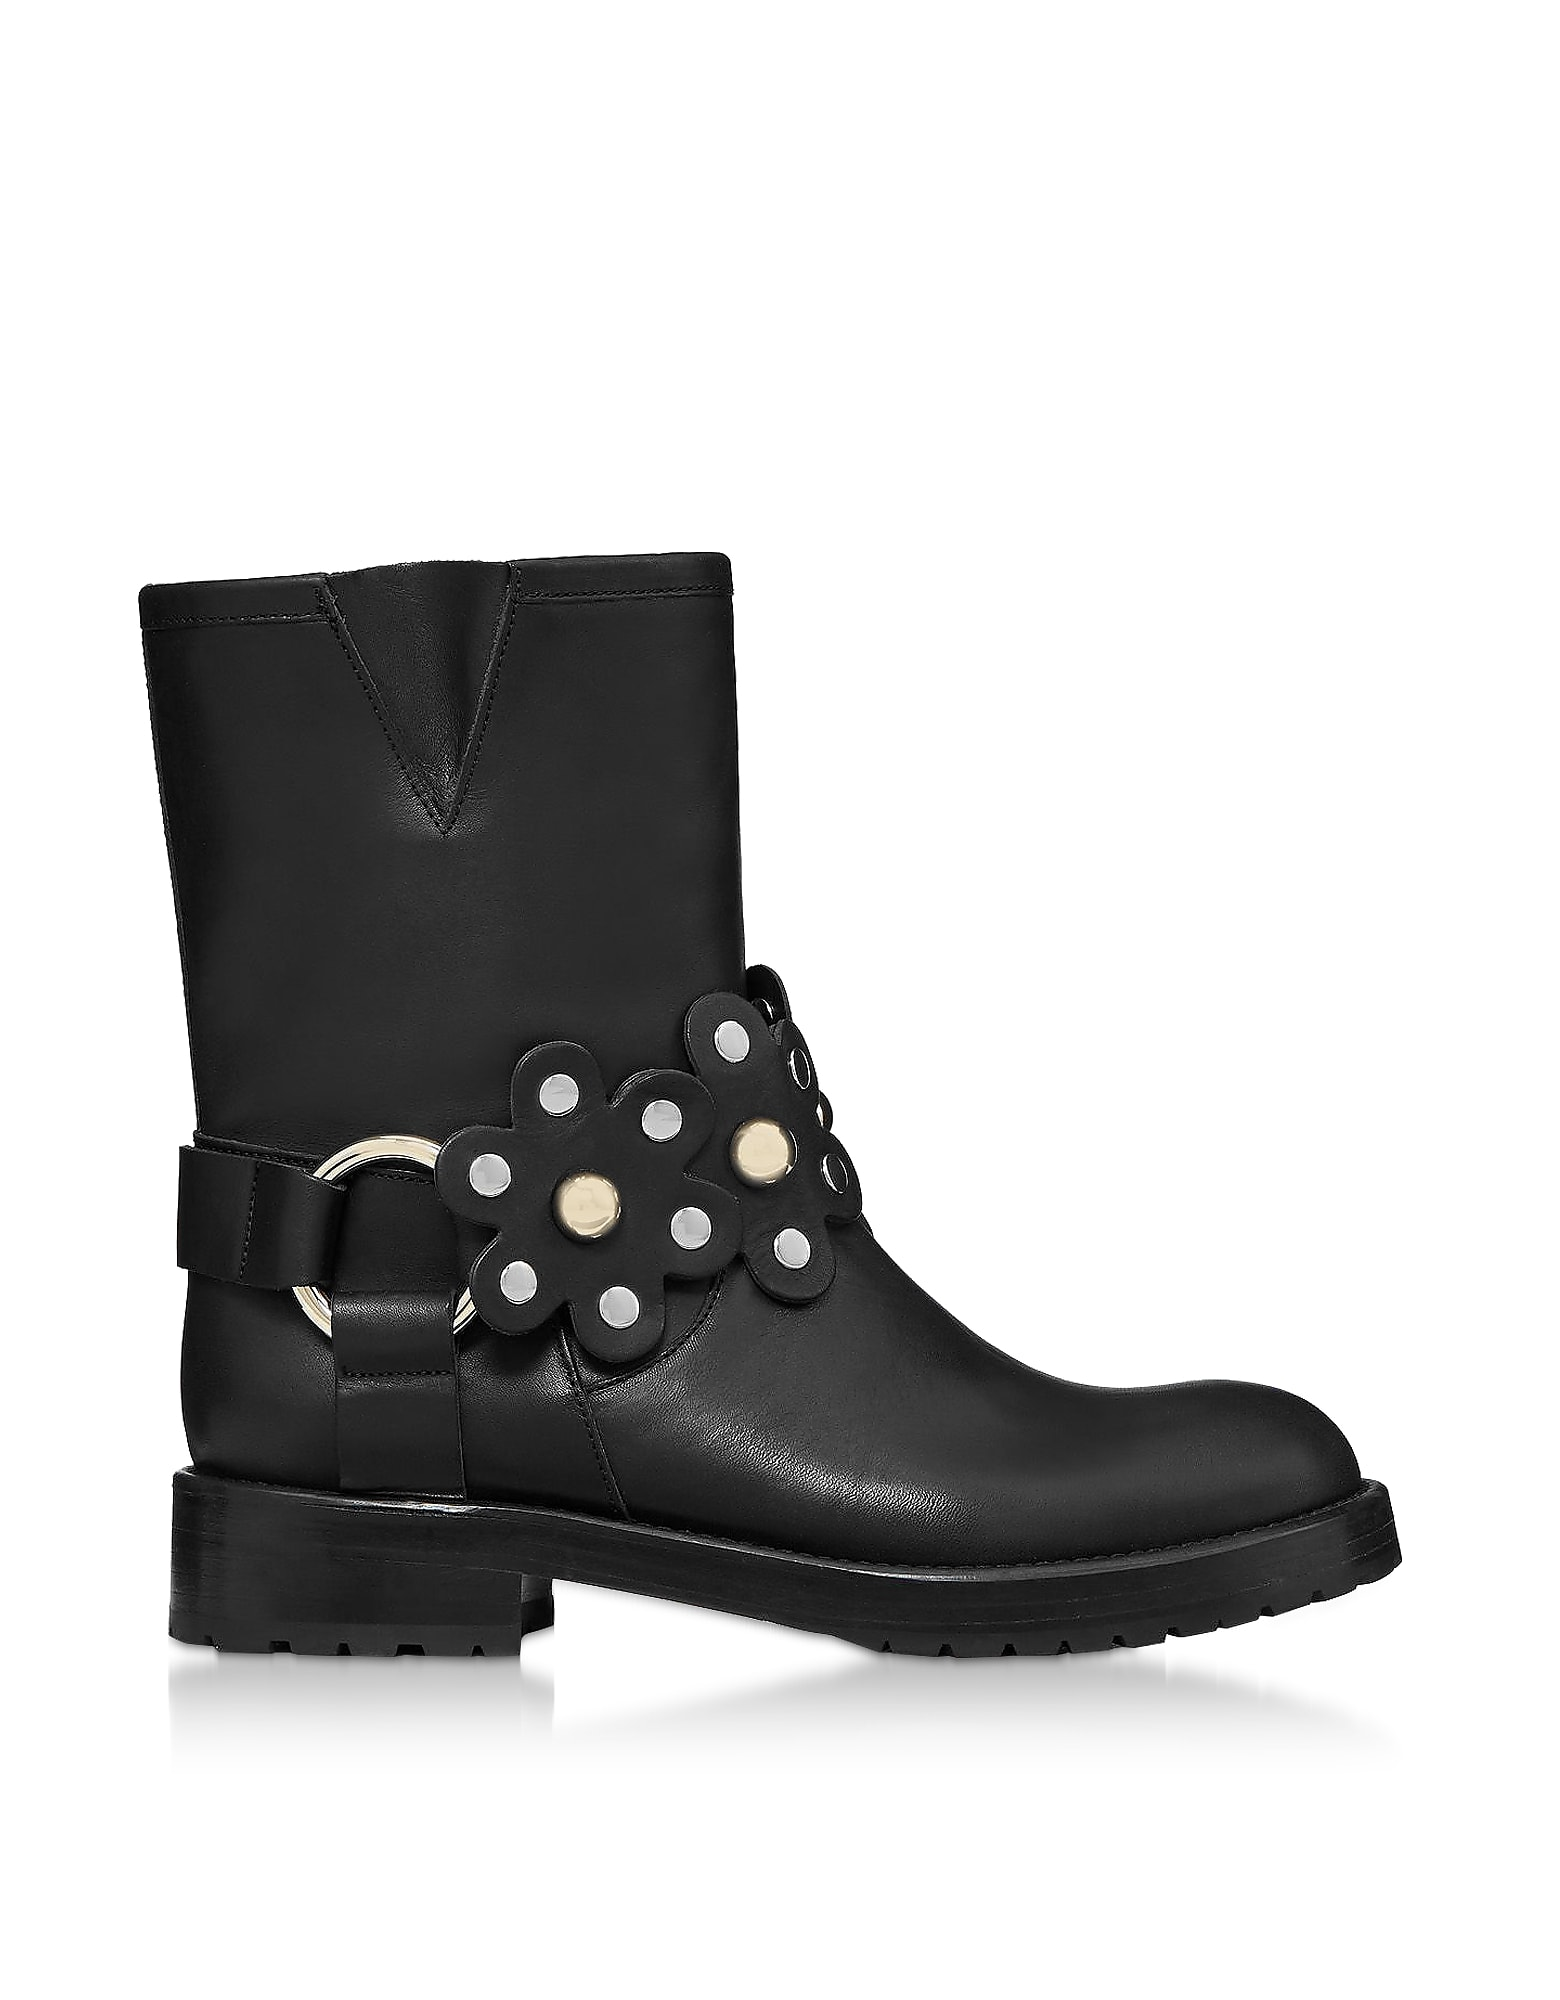 Red Valentino Black Leather Flower Puzzle Biker Boots